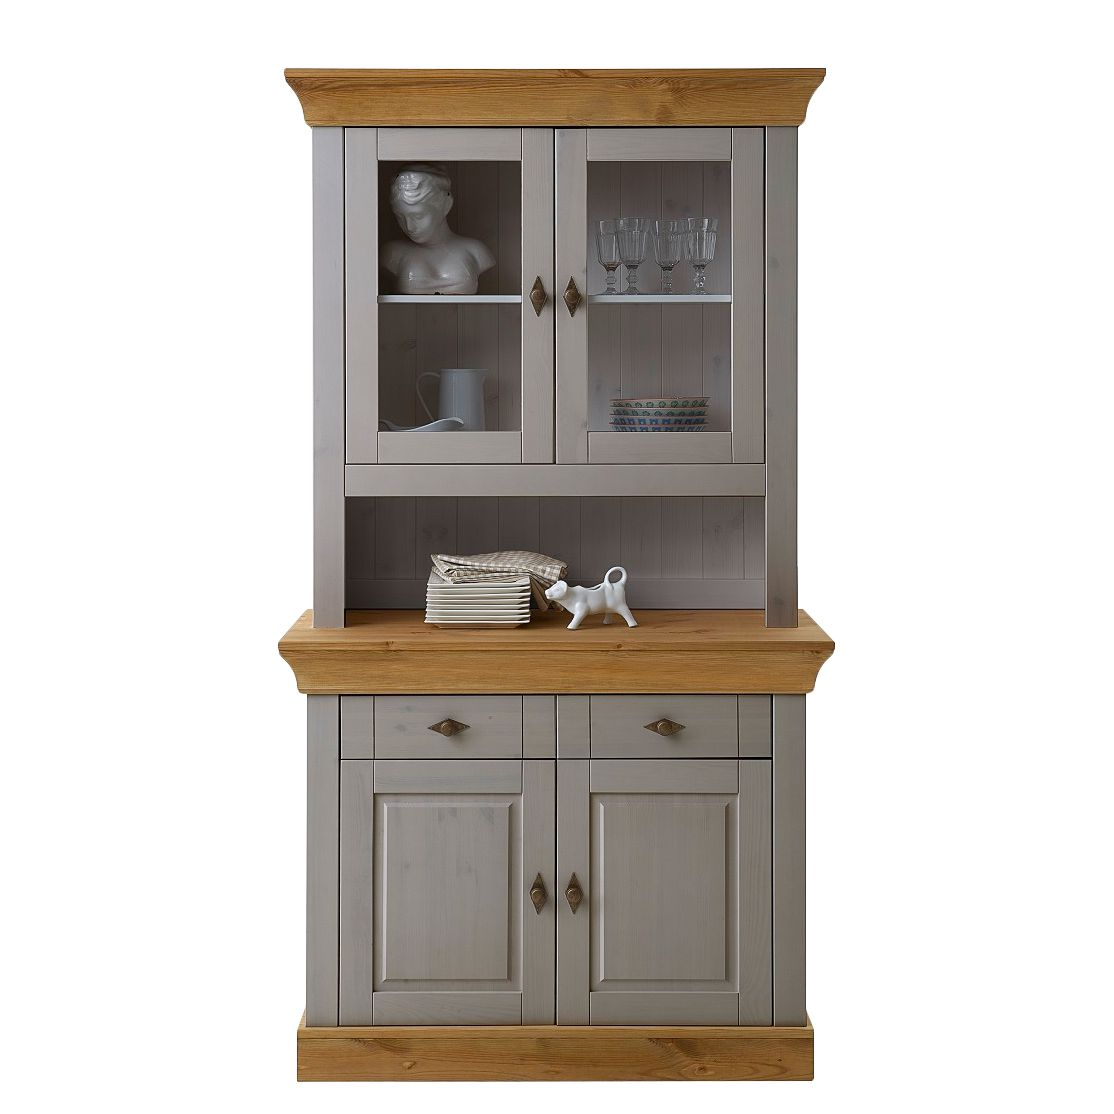 buffet bergen kiefer massiv grau laugenfarbig maison belfort g nstig online kaufen. Black Bedroom Furniture Sets. Home Design Ideas